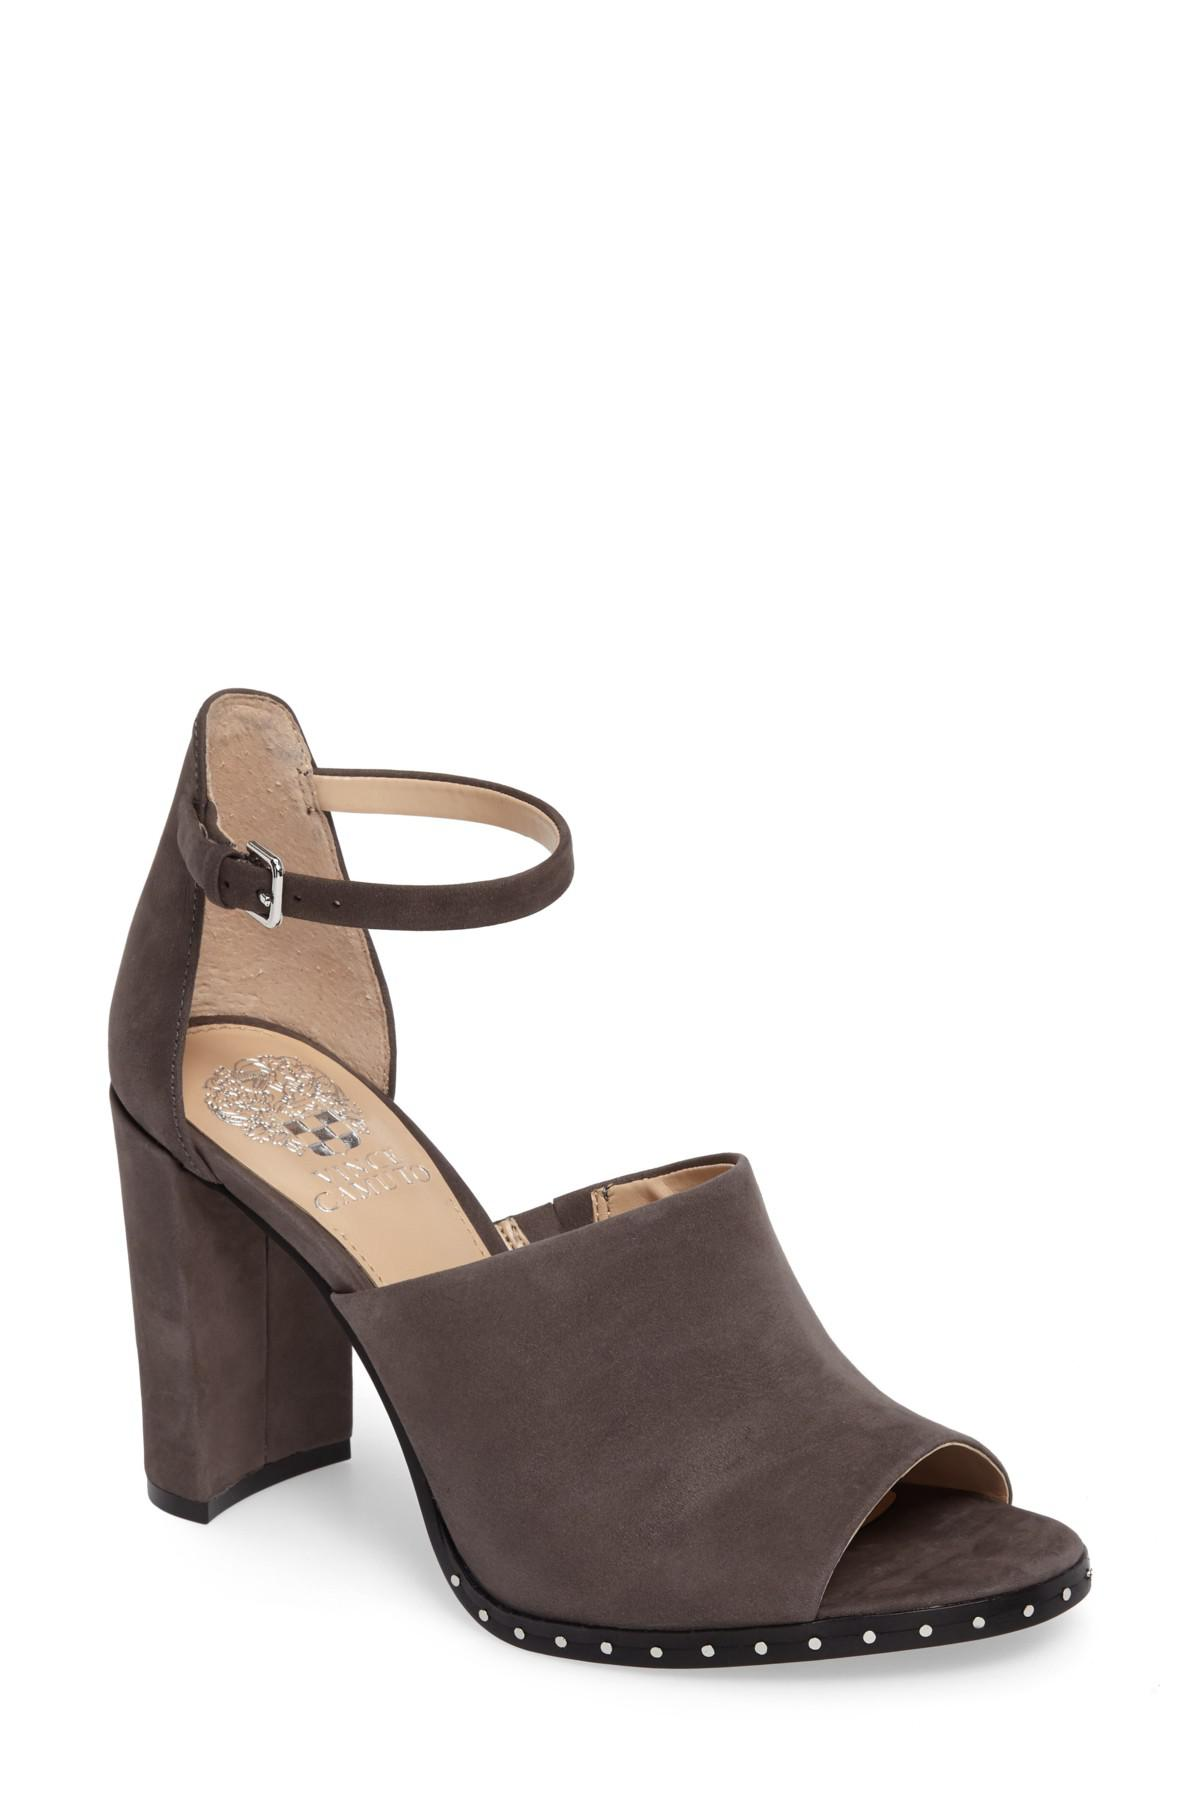 bc0ed1d78ed Lyst - Vince Camuto Jilley Sandal in Gray - Save 30%